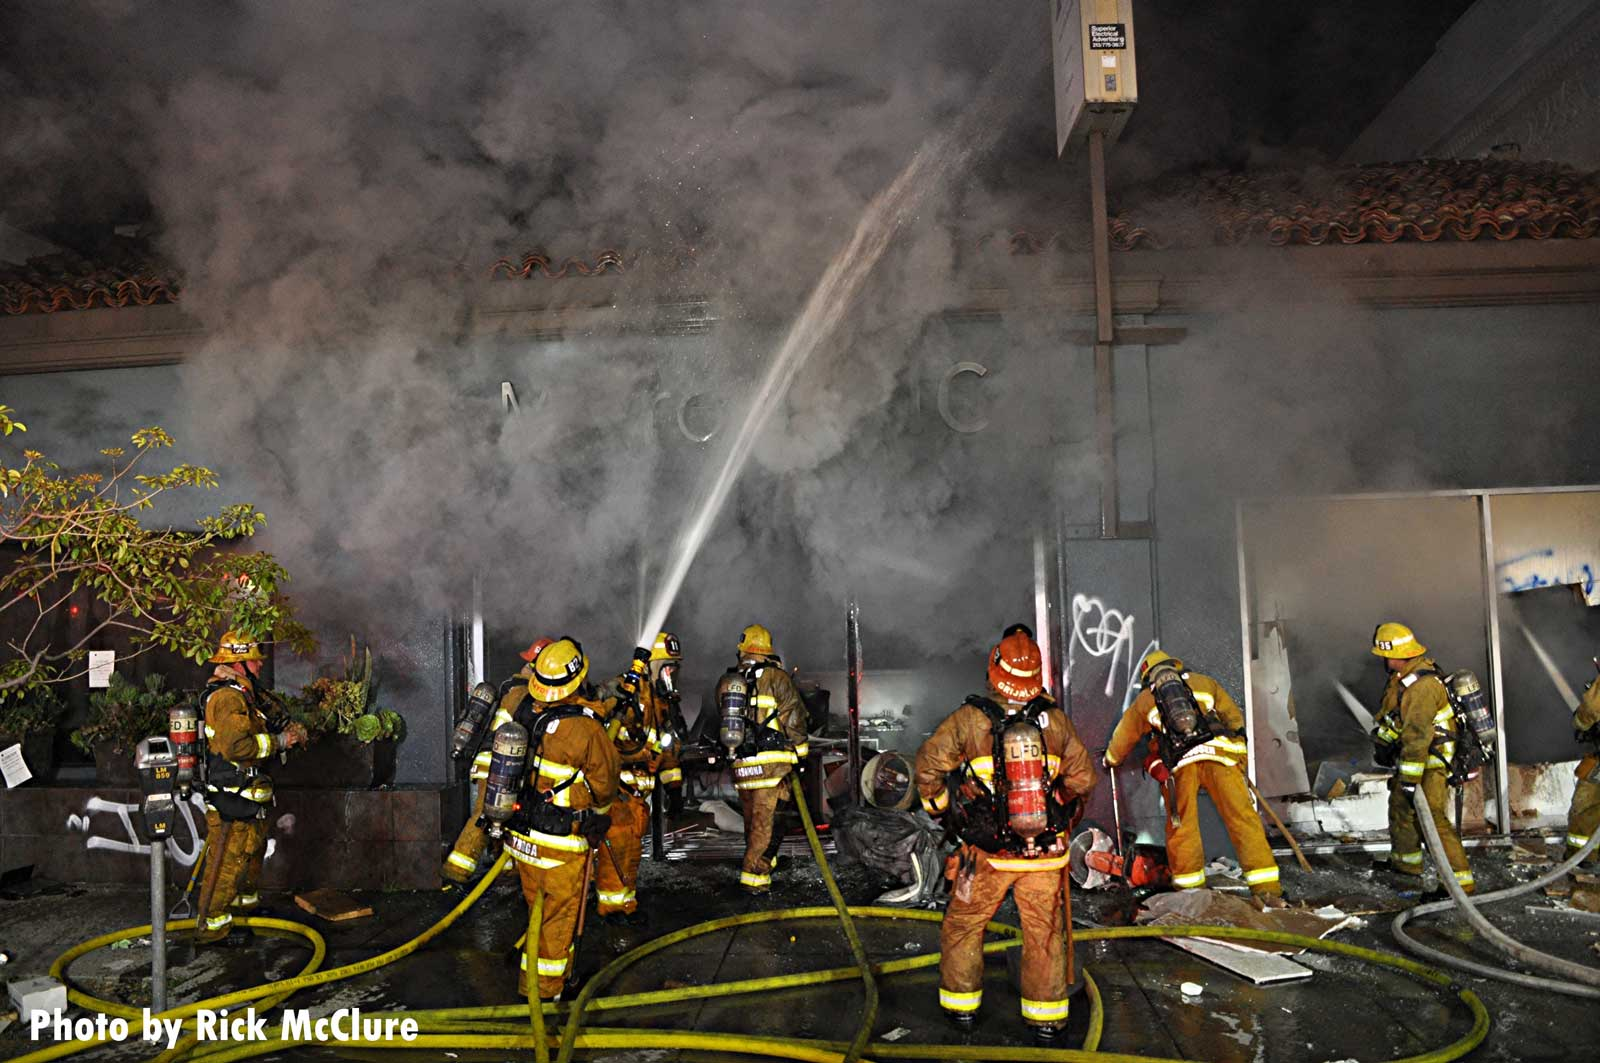 LAFD firefighter manages a hoseline as smoke covers the scene